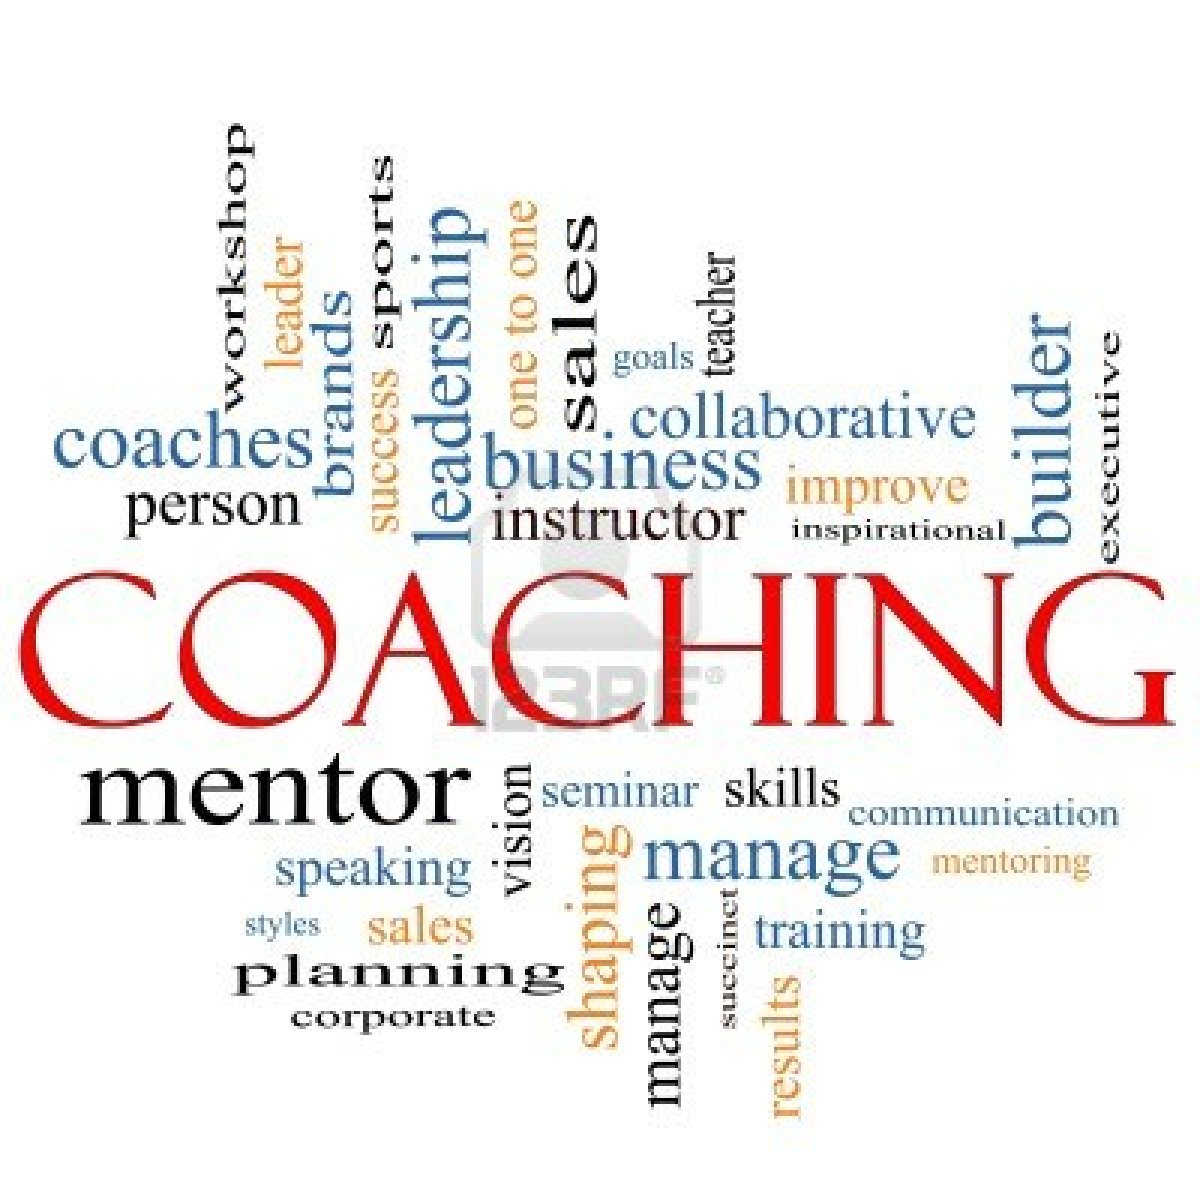 Outsourcing advisors the power of coaching